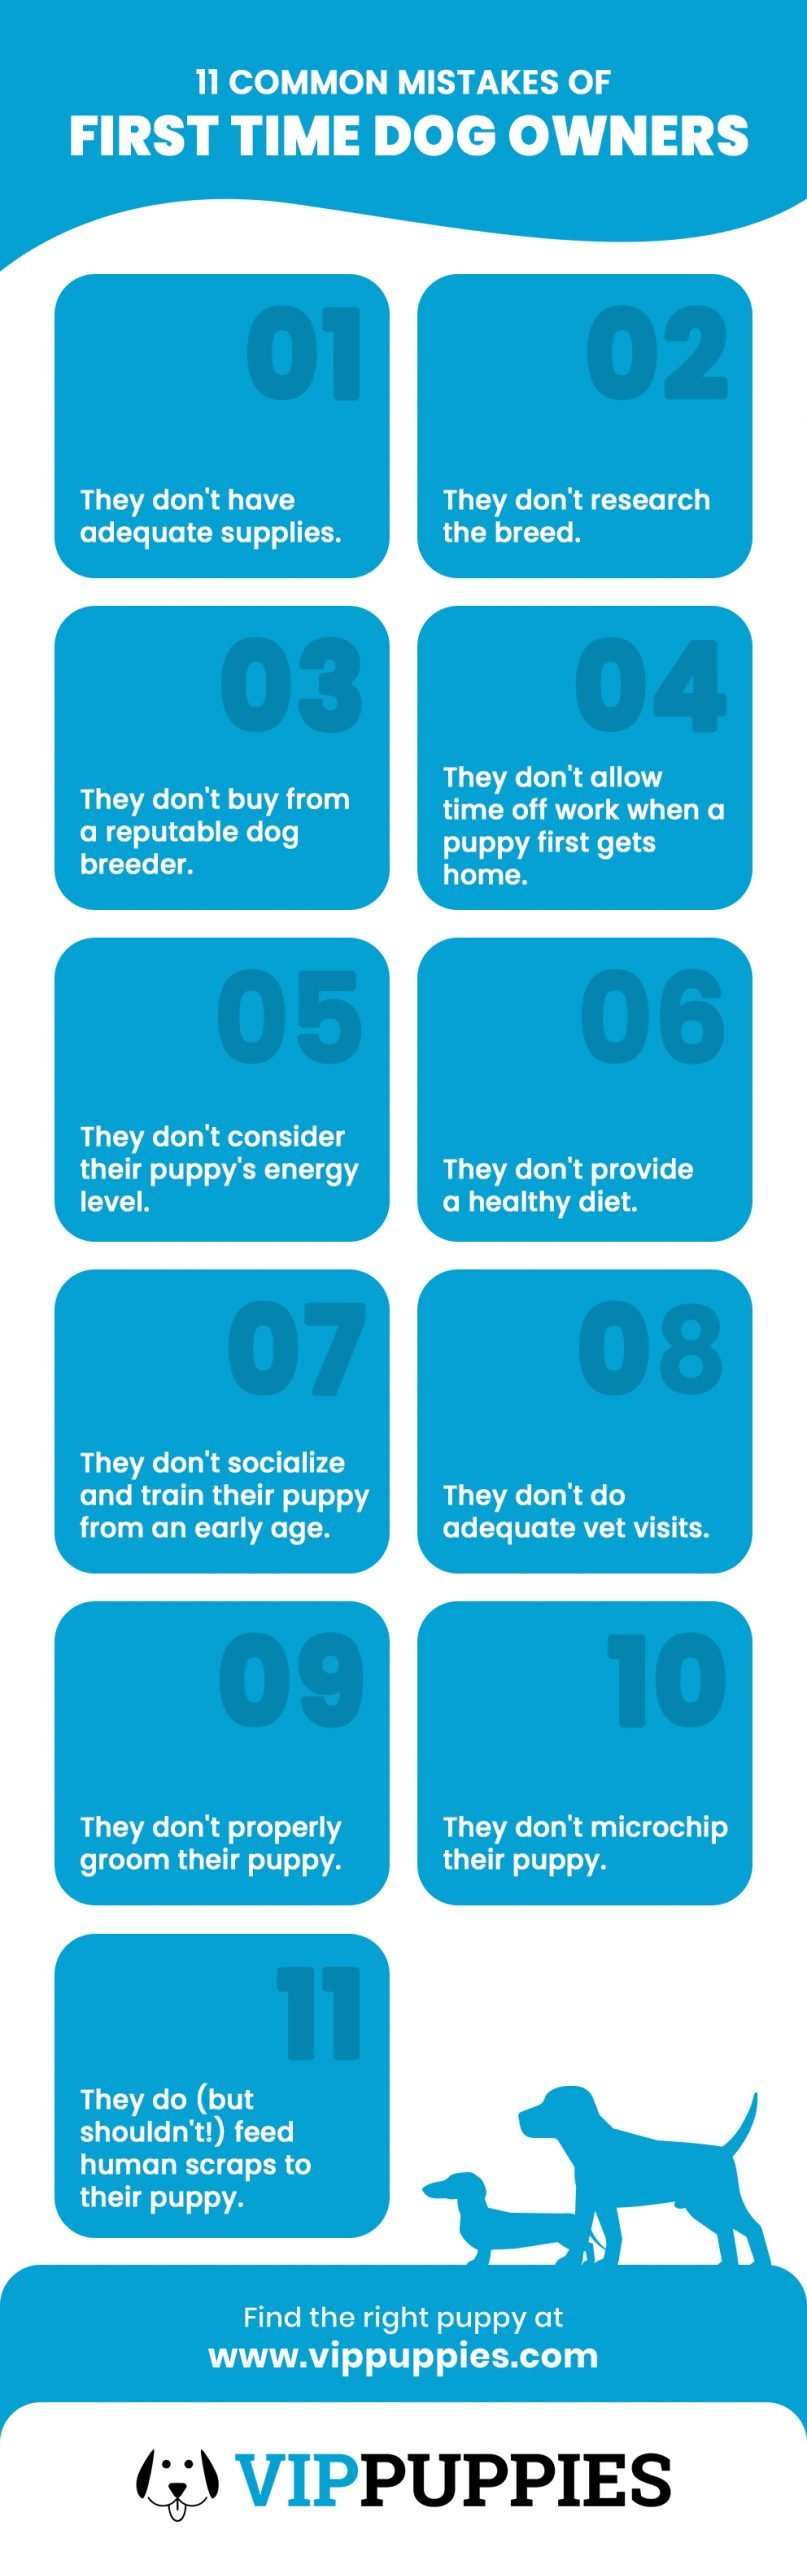 11 Common Mistakes of First Time Dog Owners Infographic